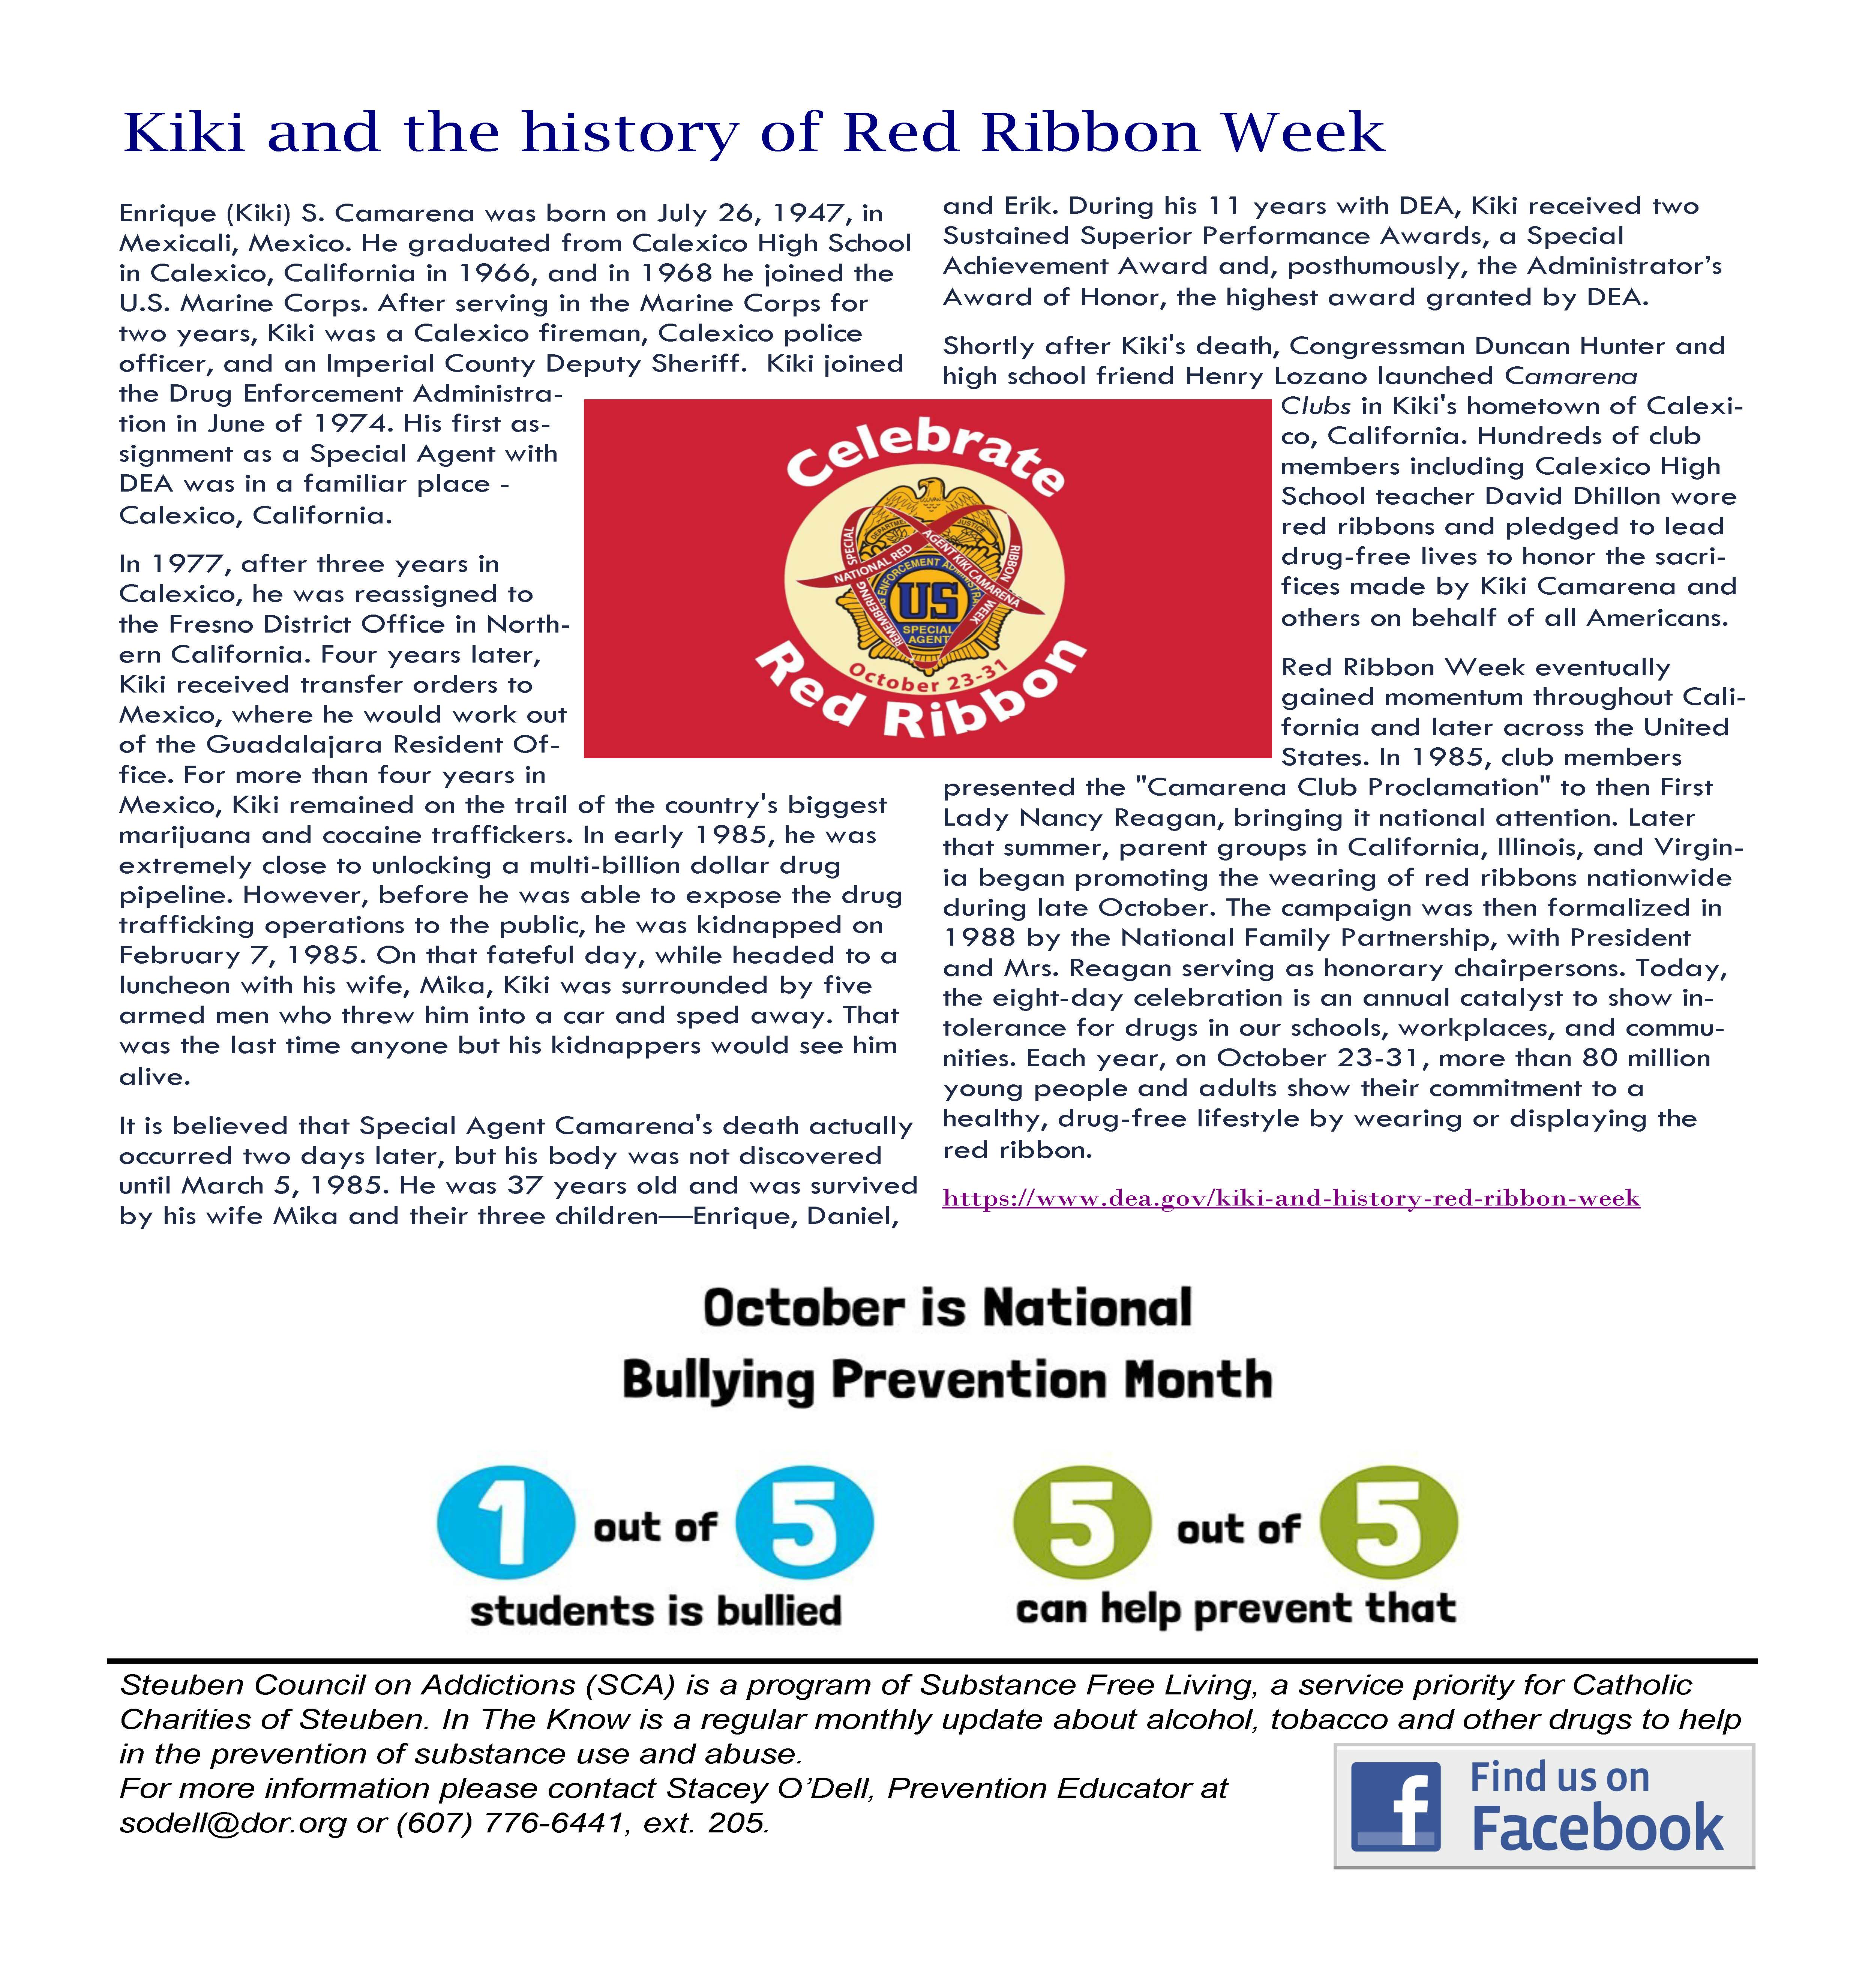 October 2019 Page 3 - In the Know - Steuben Council on Addiction News